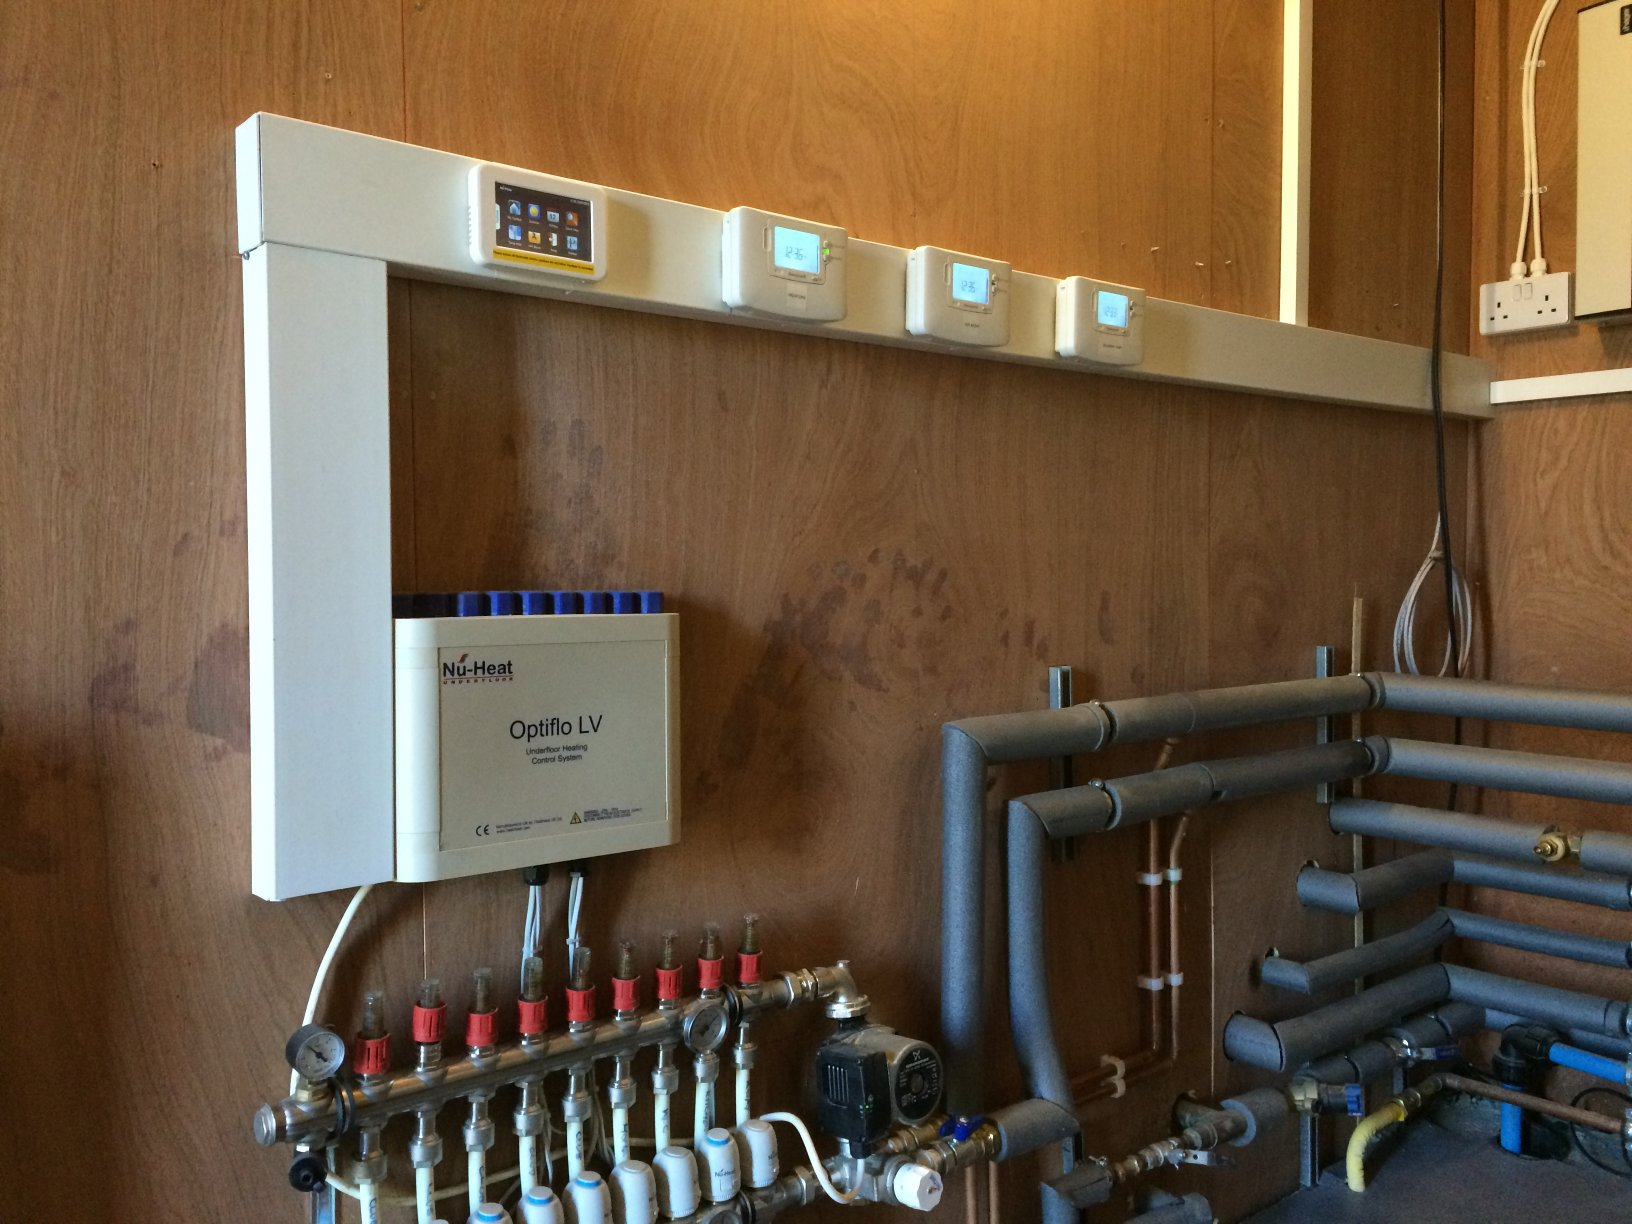 Heating control wiring installation and repair - L and C Electrical ...